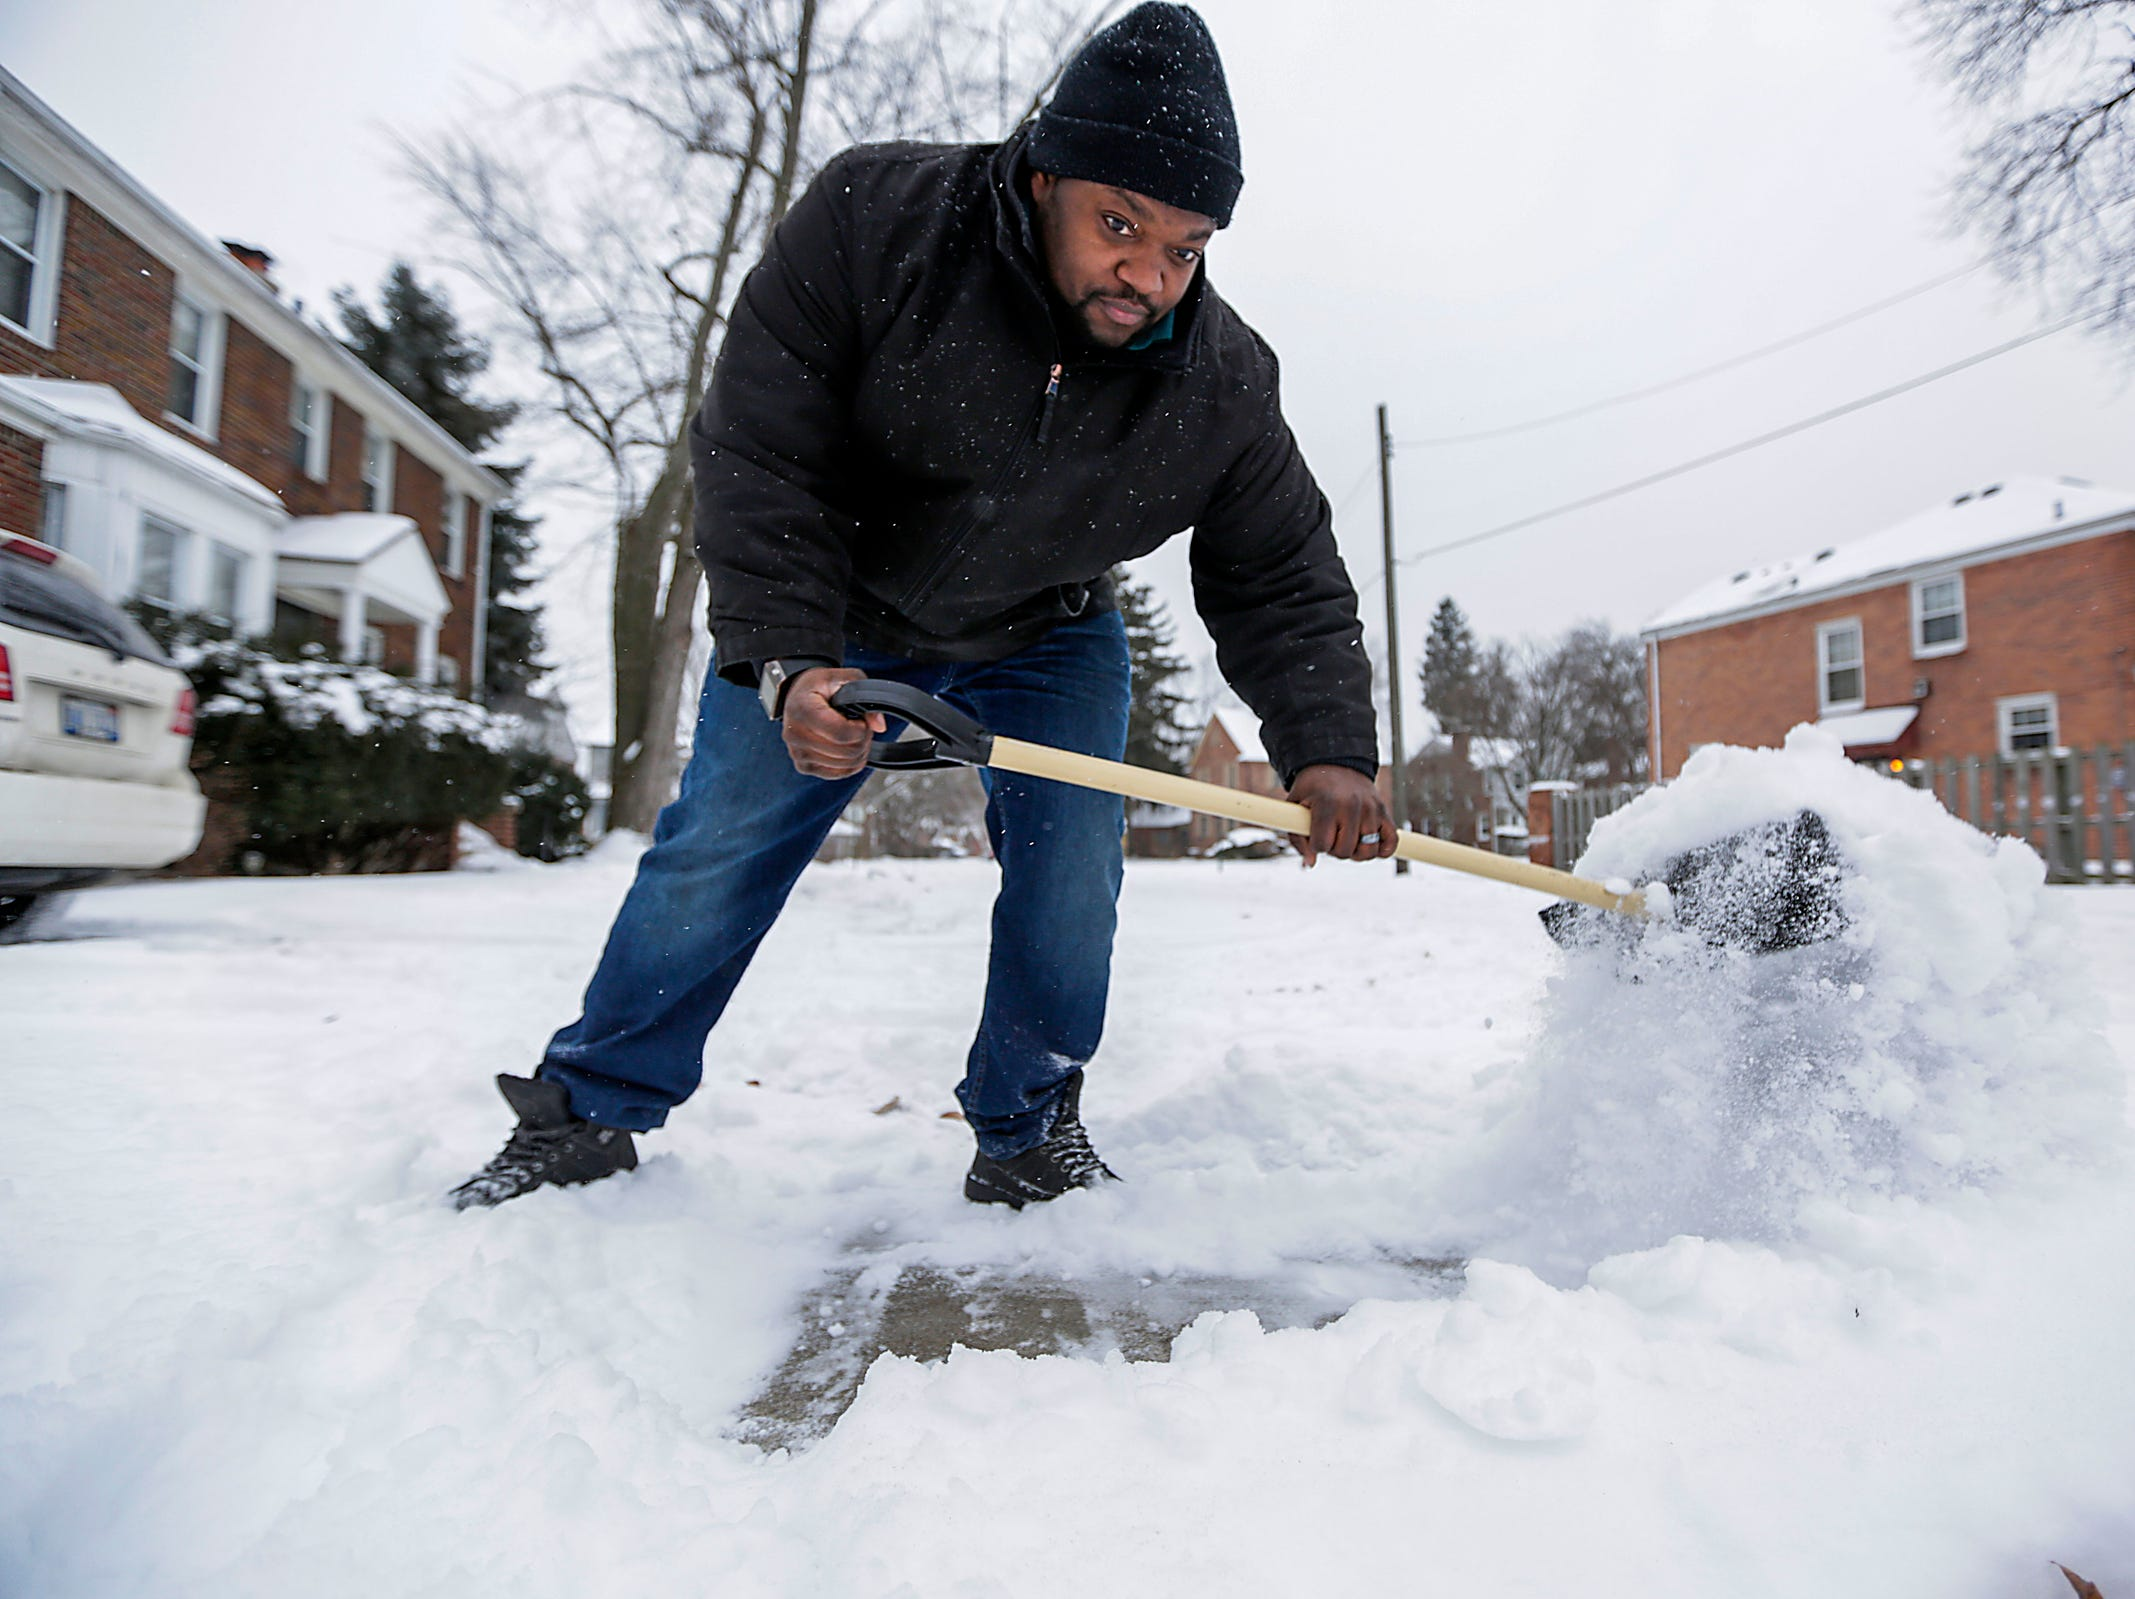 On the eve of the Polar Vortex, David Collins, 36, clears the snow from the walkways and driveway in front of his home in Detroit on Tuesday, Jan. 29, 2019. Some areas of Lower Michigan could face wind chills as low as 45 degrees below zero, according to the National Weather Service.